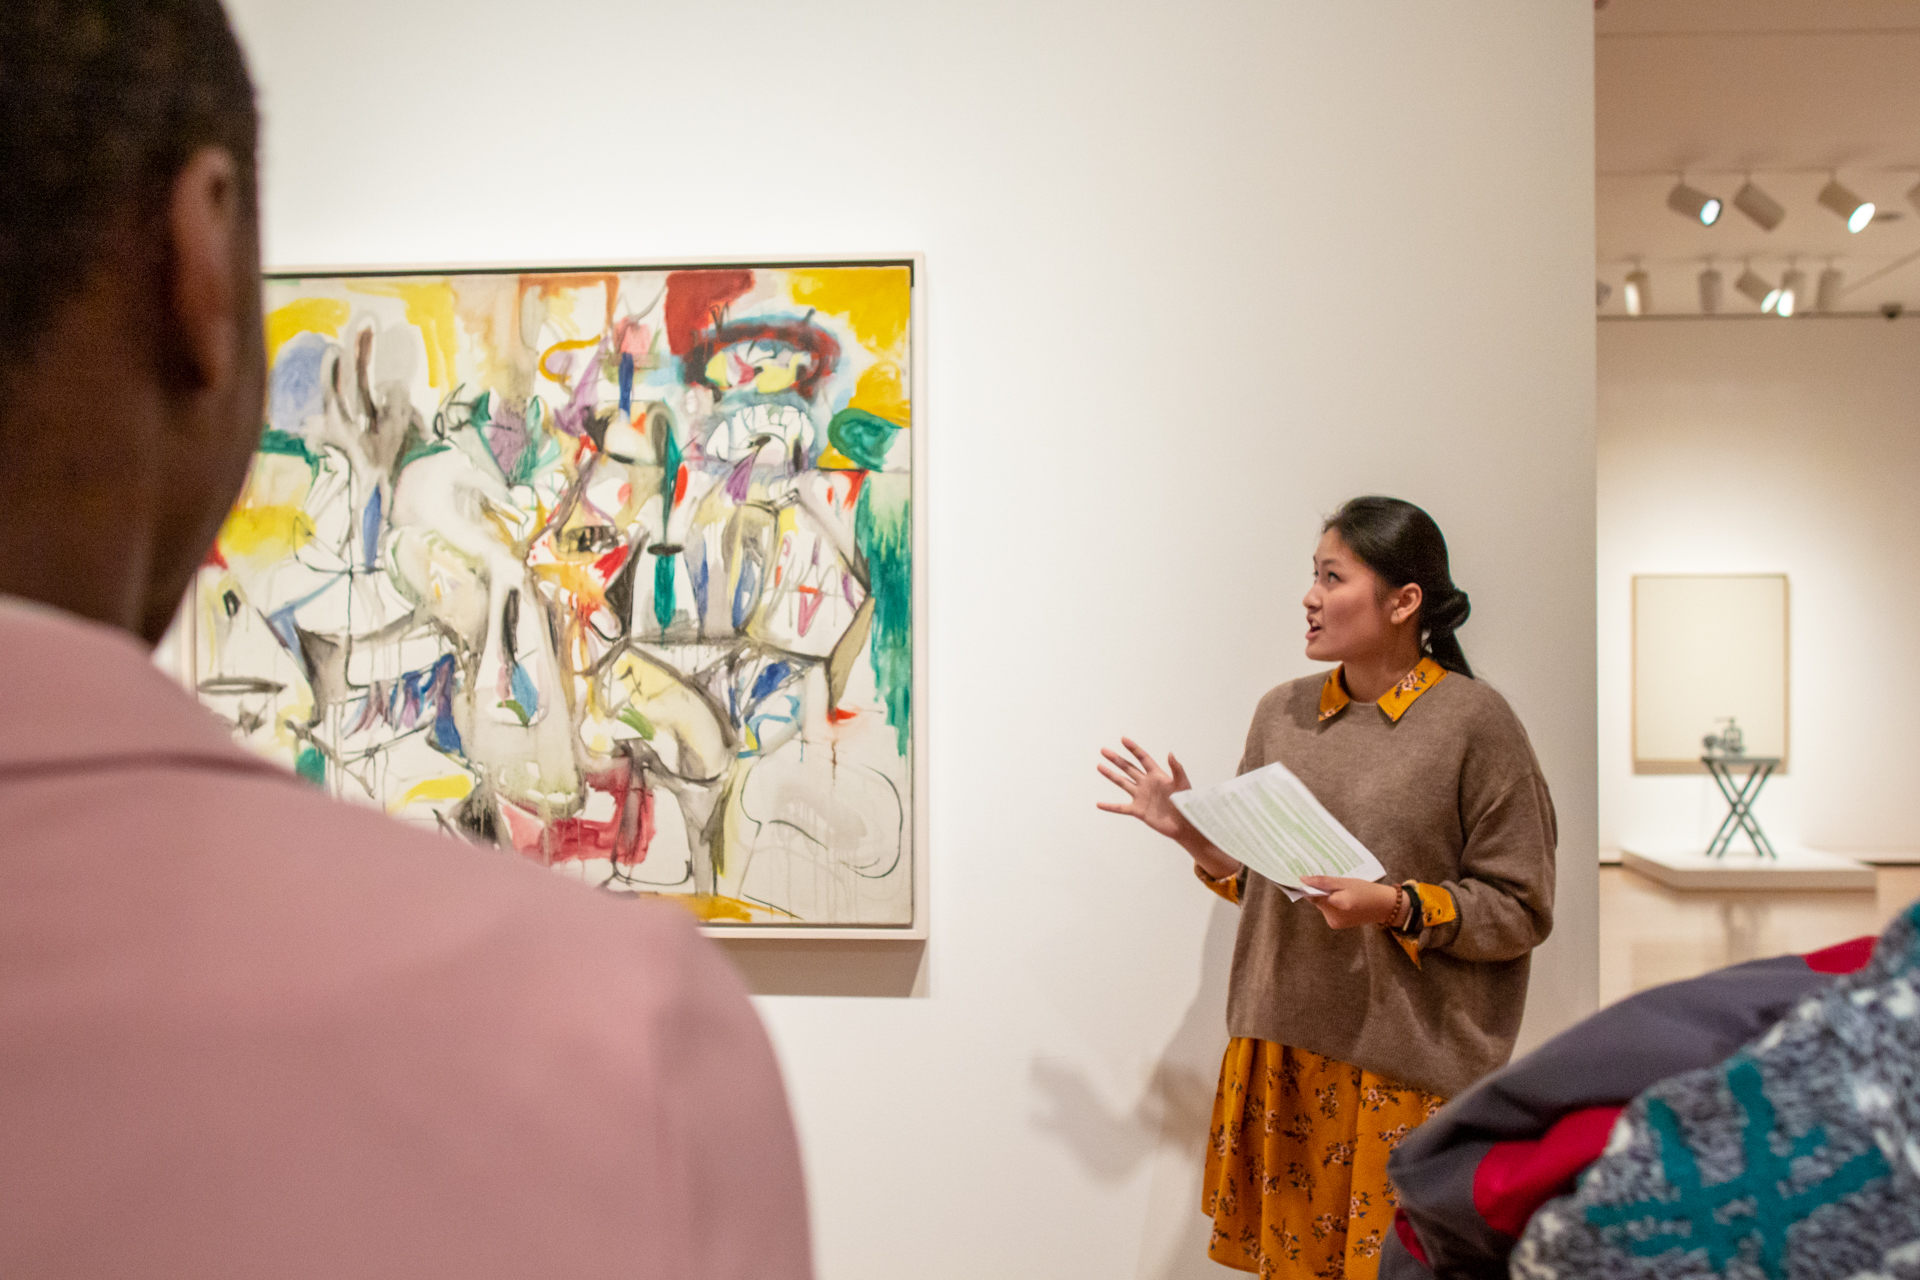 Trang speaking on a tour of the Modern and Contemporary galleries at Seattle Art Museum